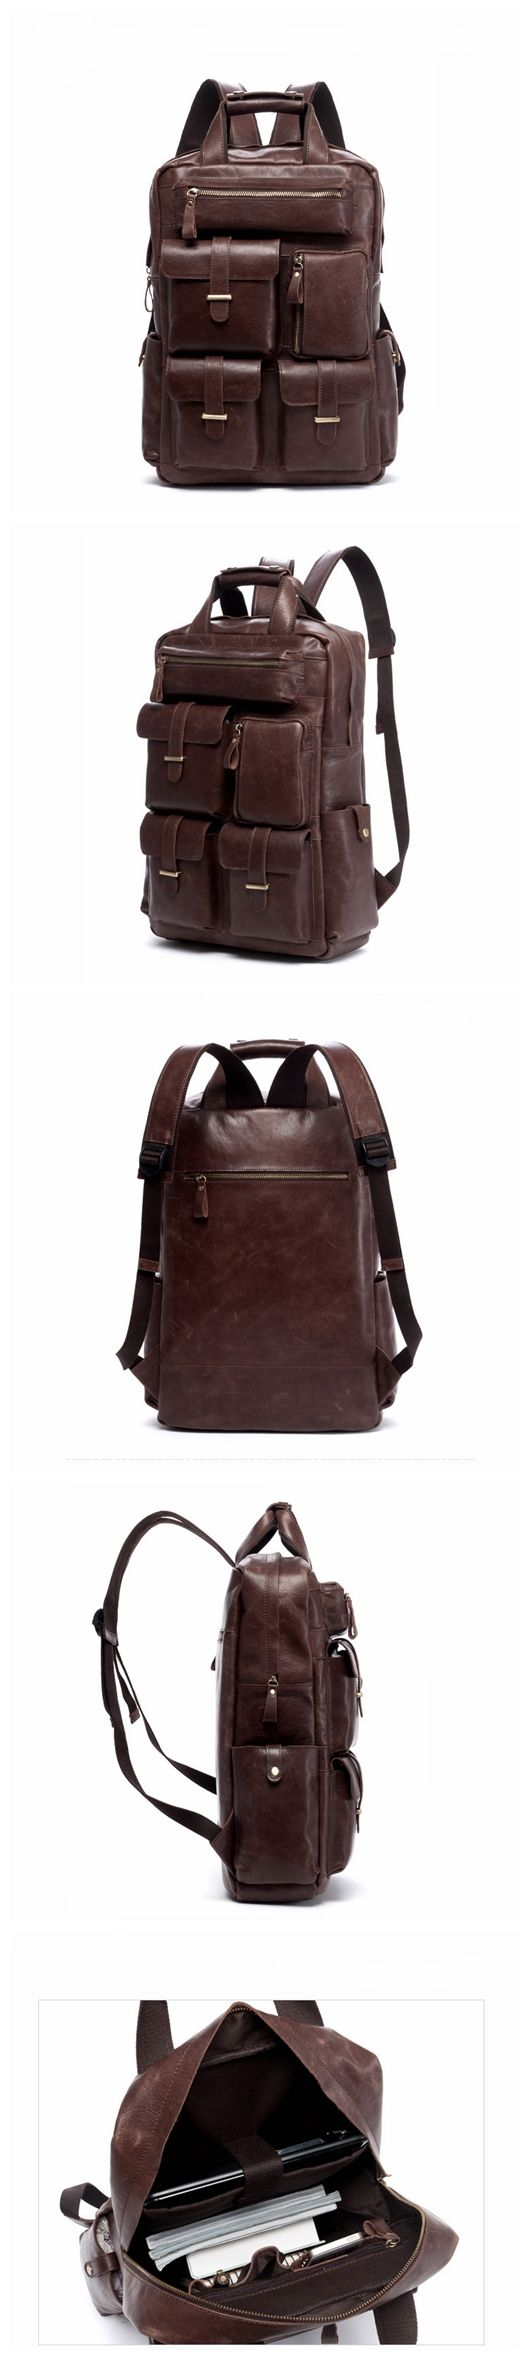 Leather Backpack Laptop Backpack Laptop Bags